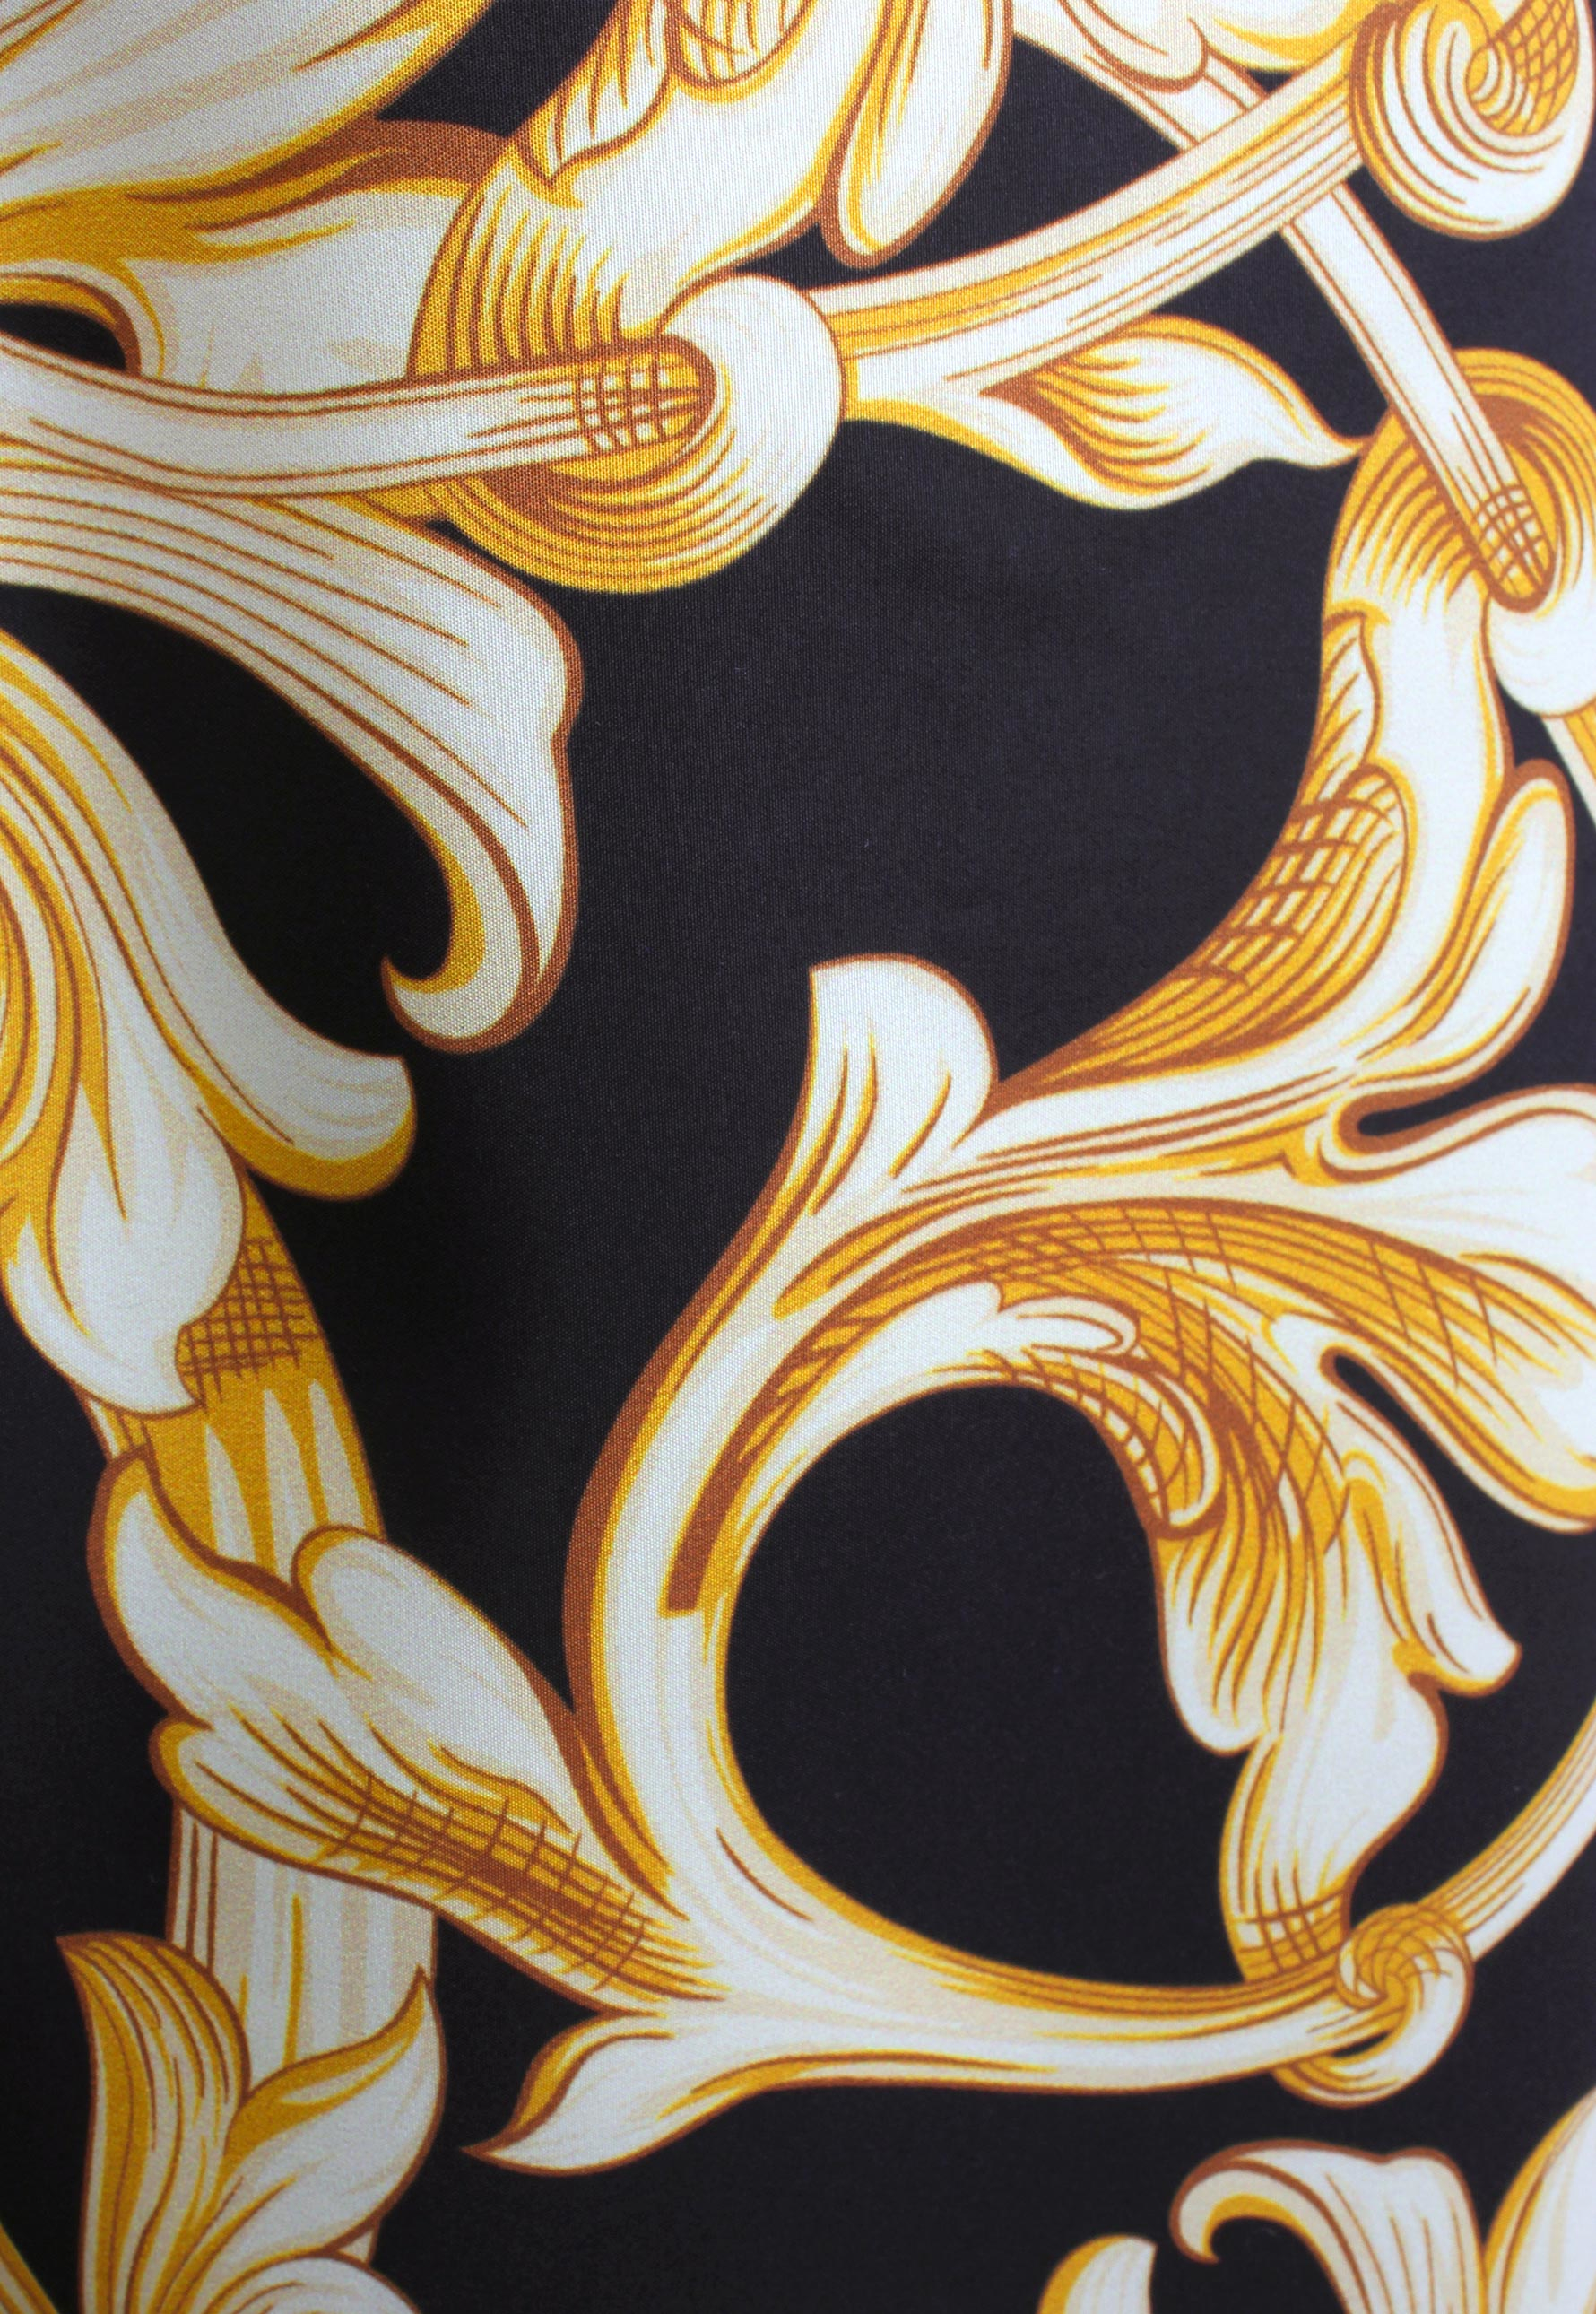 Versace Baroque Print Long Swimming Shorts Black Gold In For Versacee Printed On Gallery